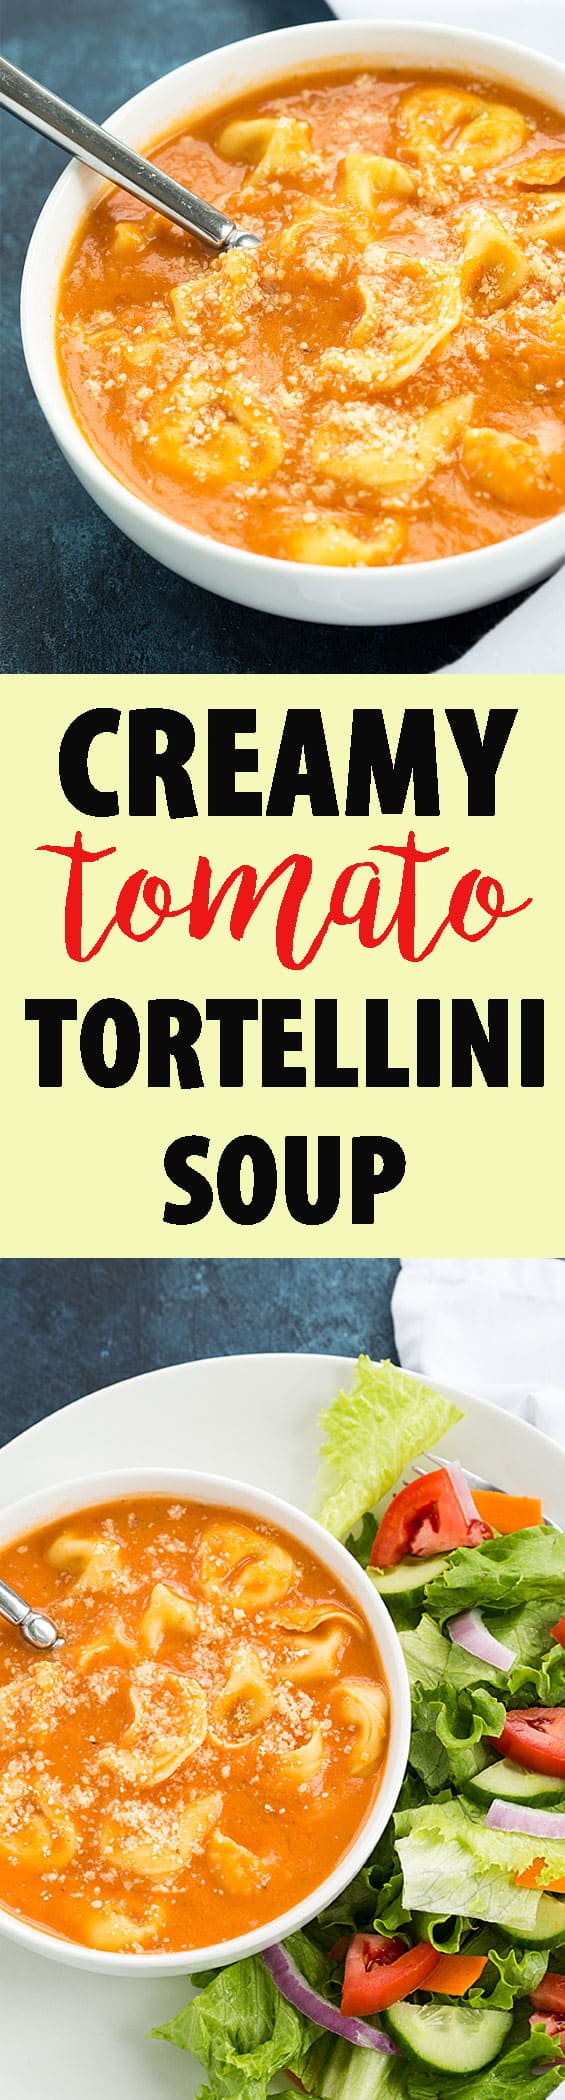 Creamy Tomato Tortellini Soup - Rich and creamy tomato soup full of cheesy tortellini.